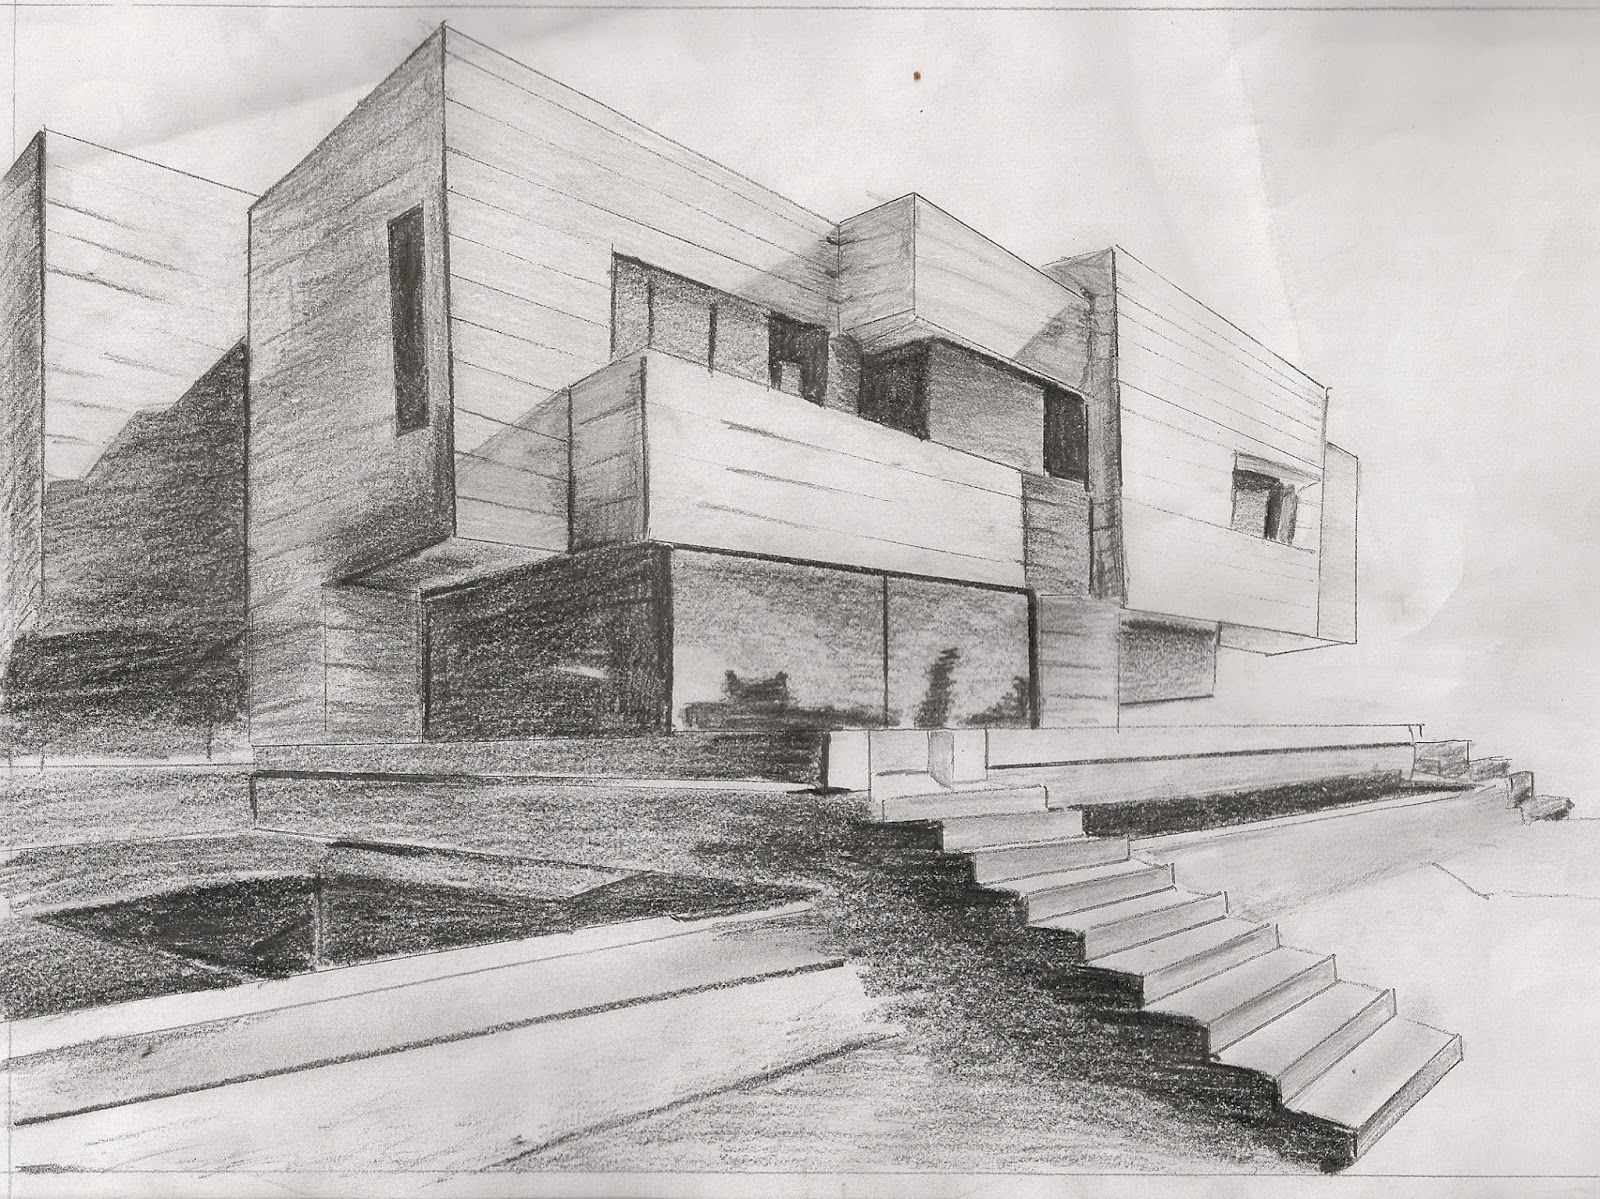 Shading is used well to highlight both shadows and for Architecture modern house design 2 point perspective view